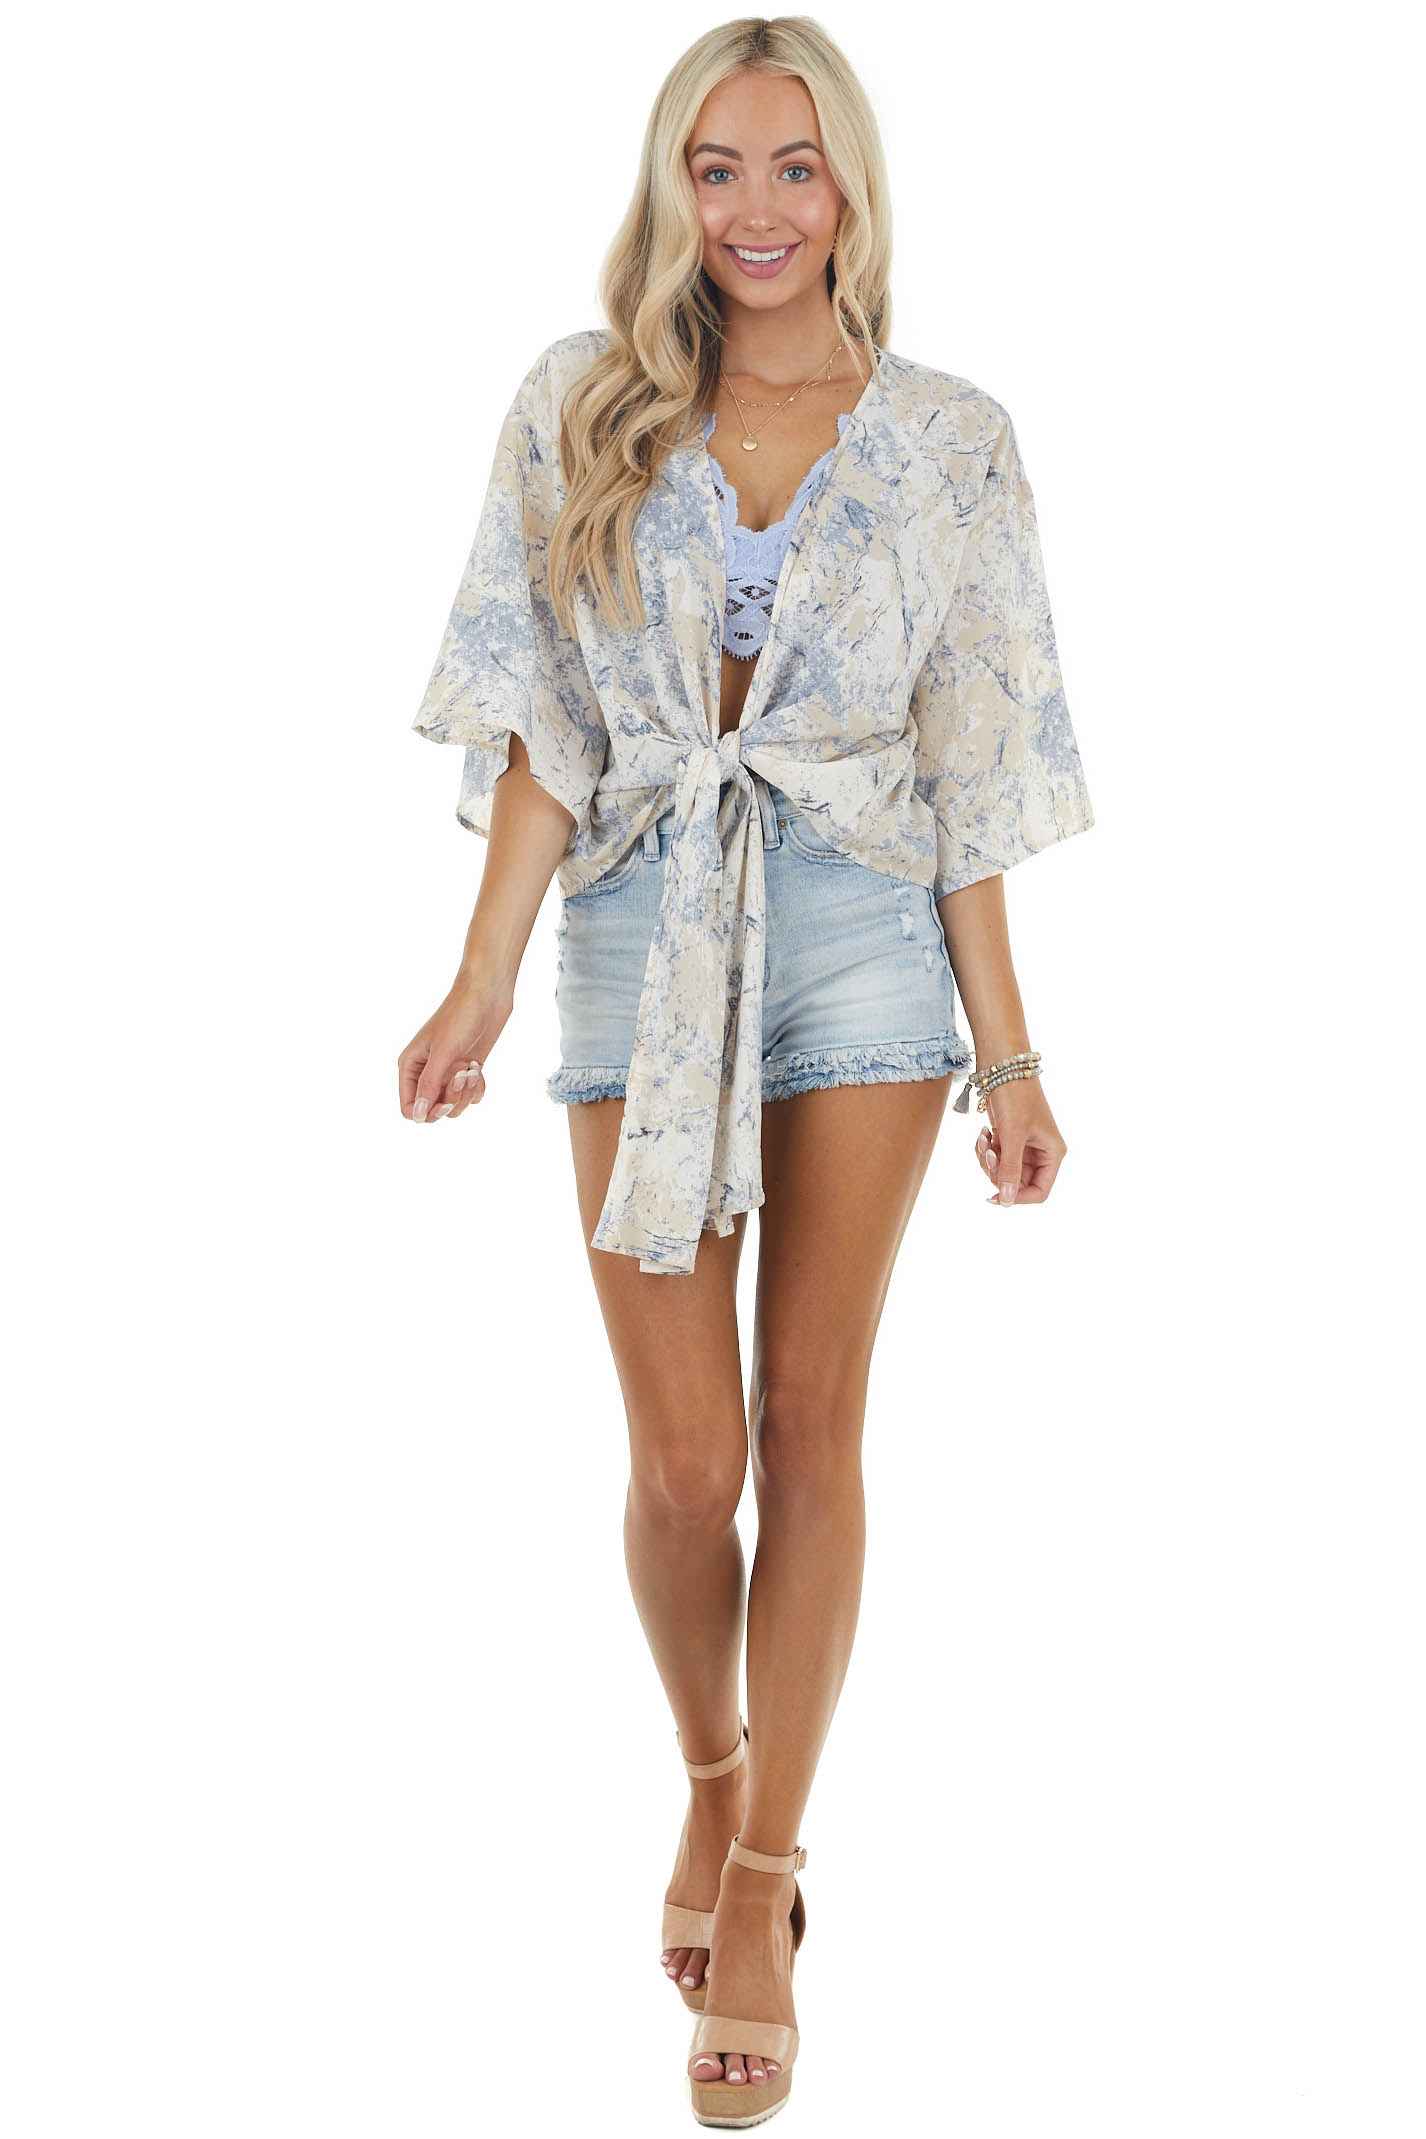 Sand and Dusty Blue Abstract Print Blouse with Front Tie